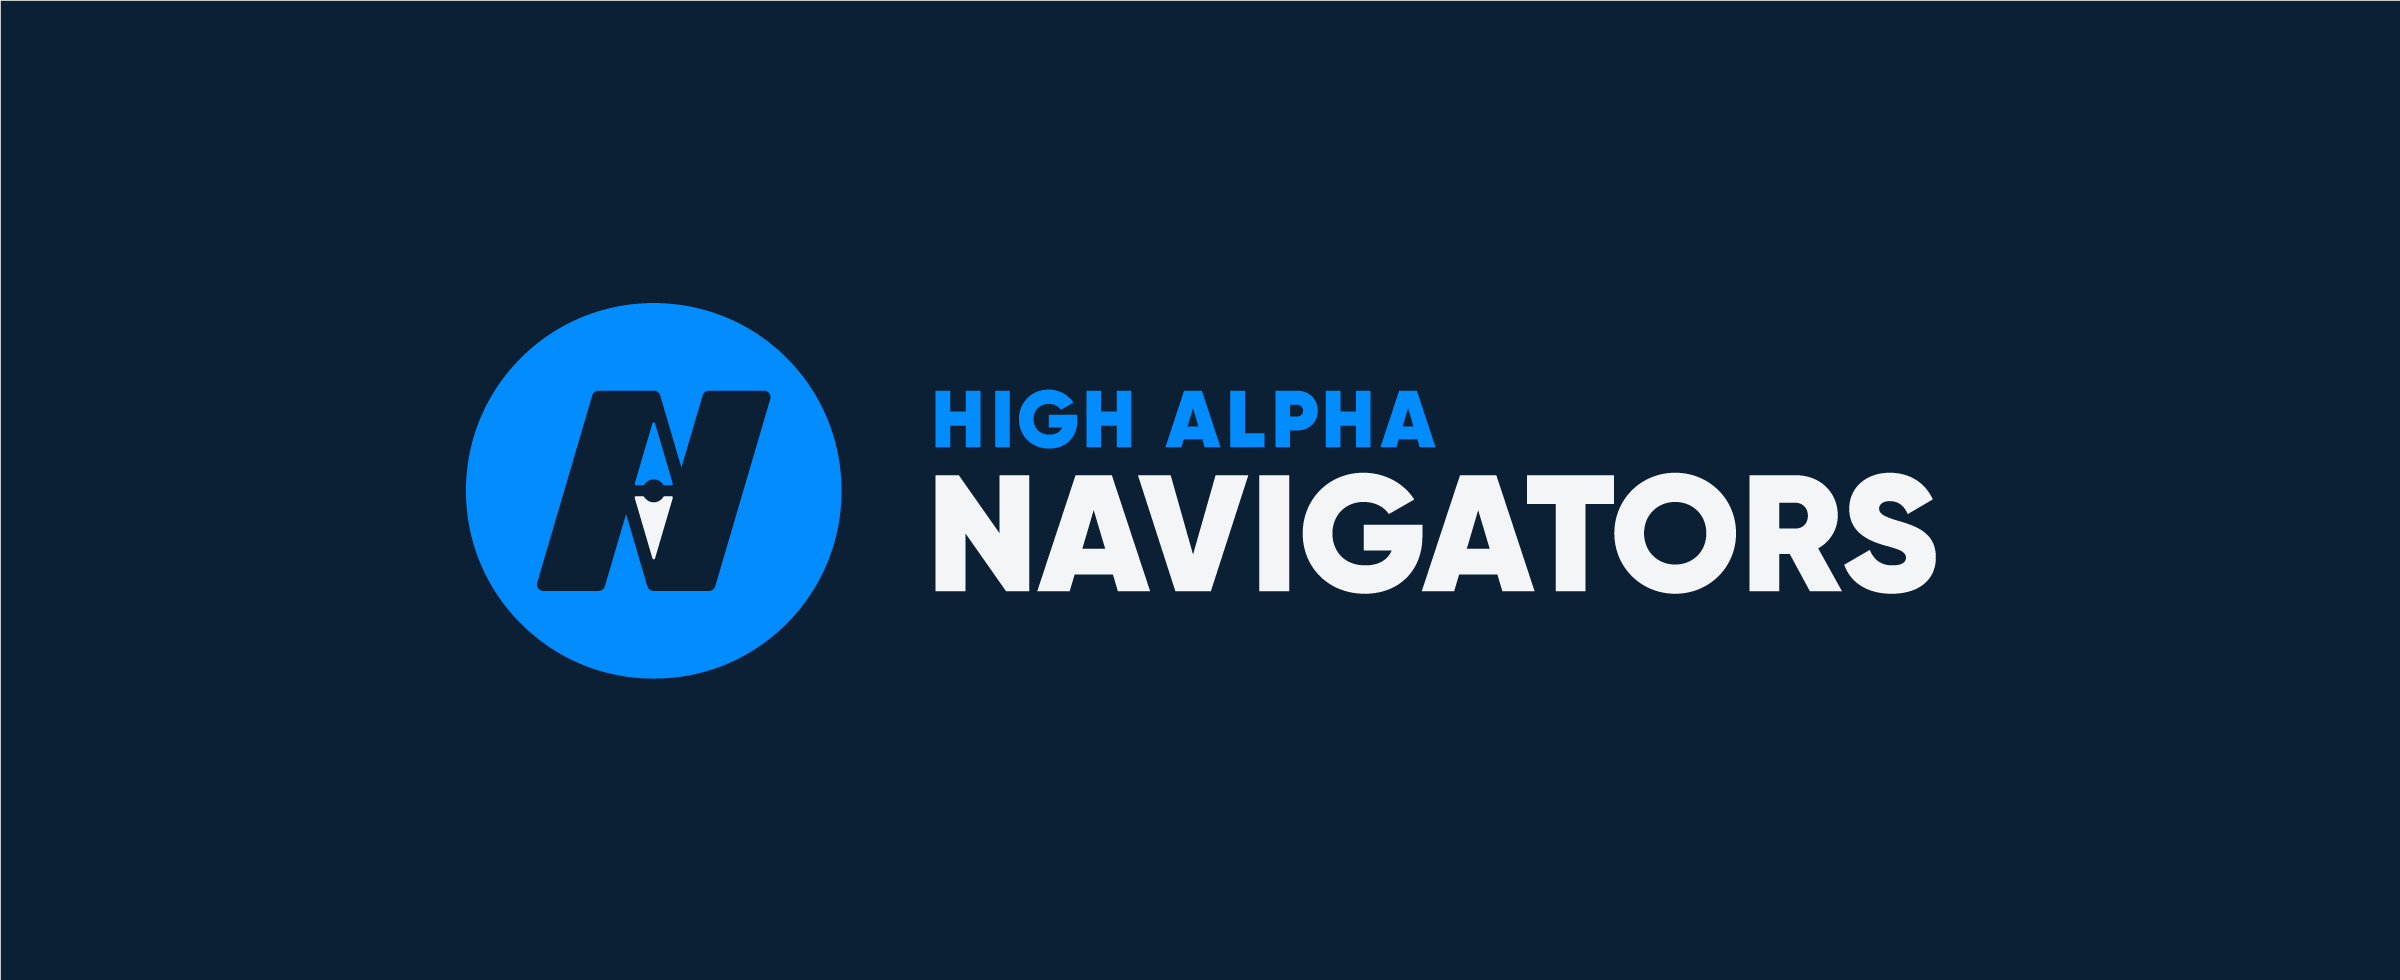 High Alpha Navigators